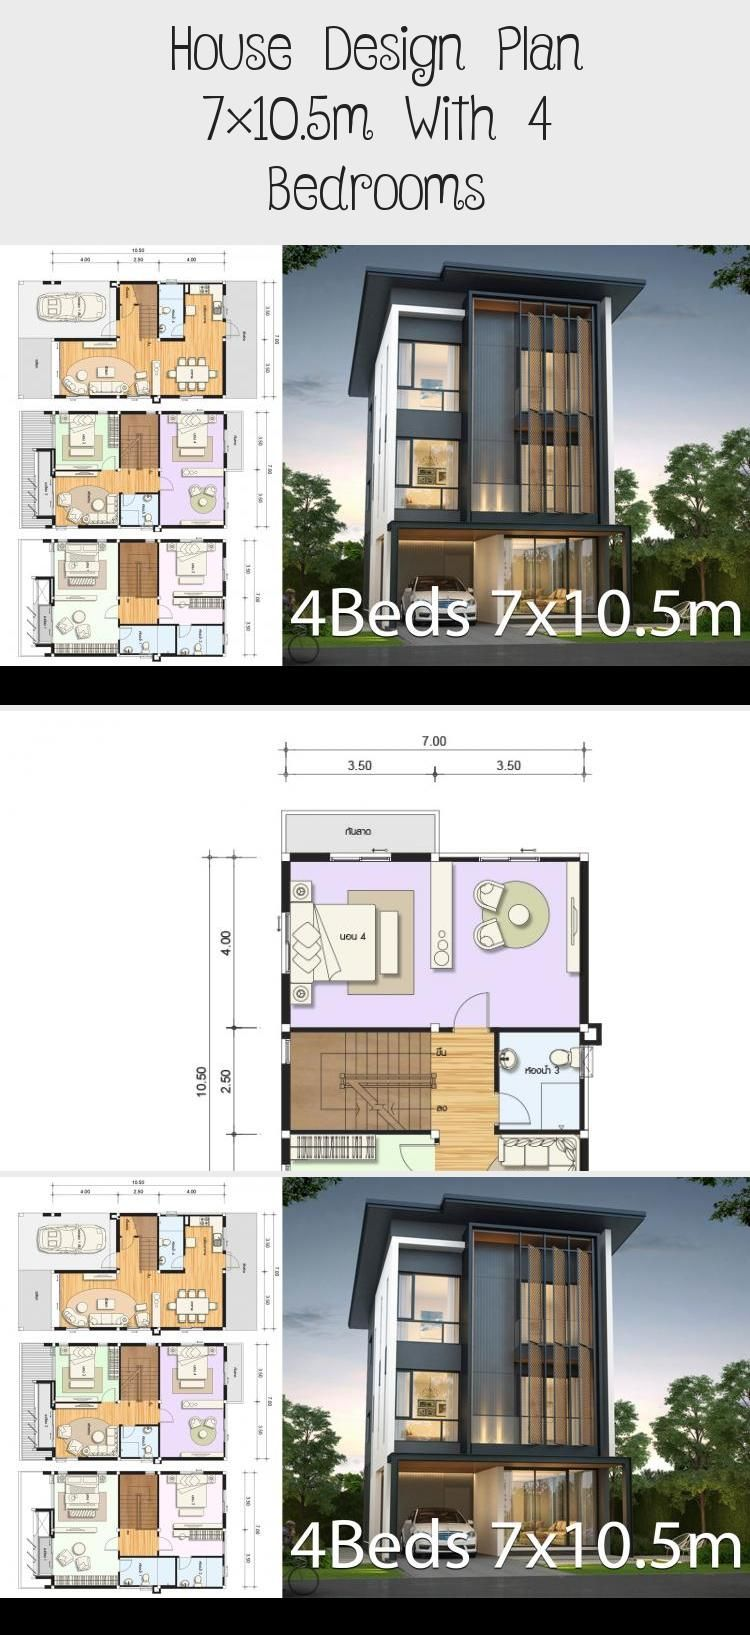 House Design Plan 7x10 5m With 4 Bedrooms Home Design With Plansearch Housedesignconcept Housed In 2020 Home Design Plans Simple House Design Bungalow House Design